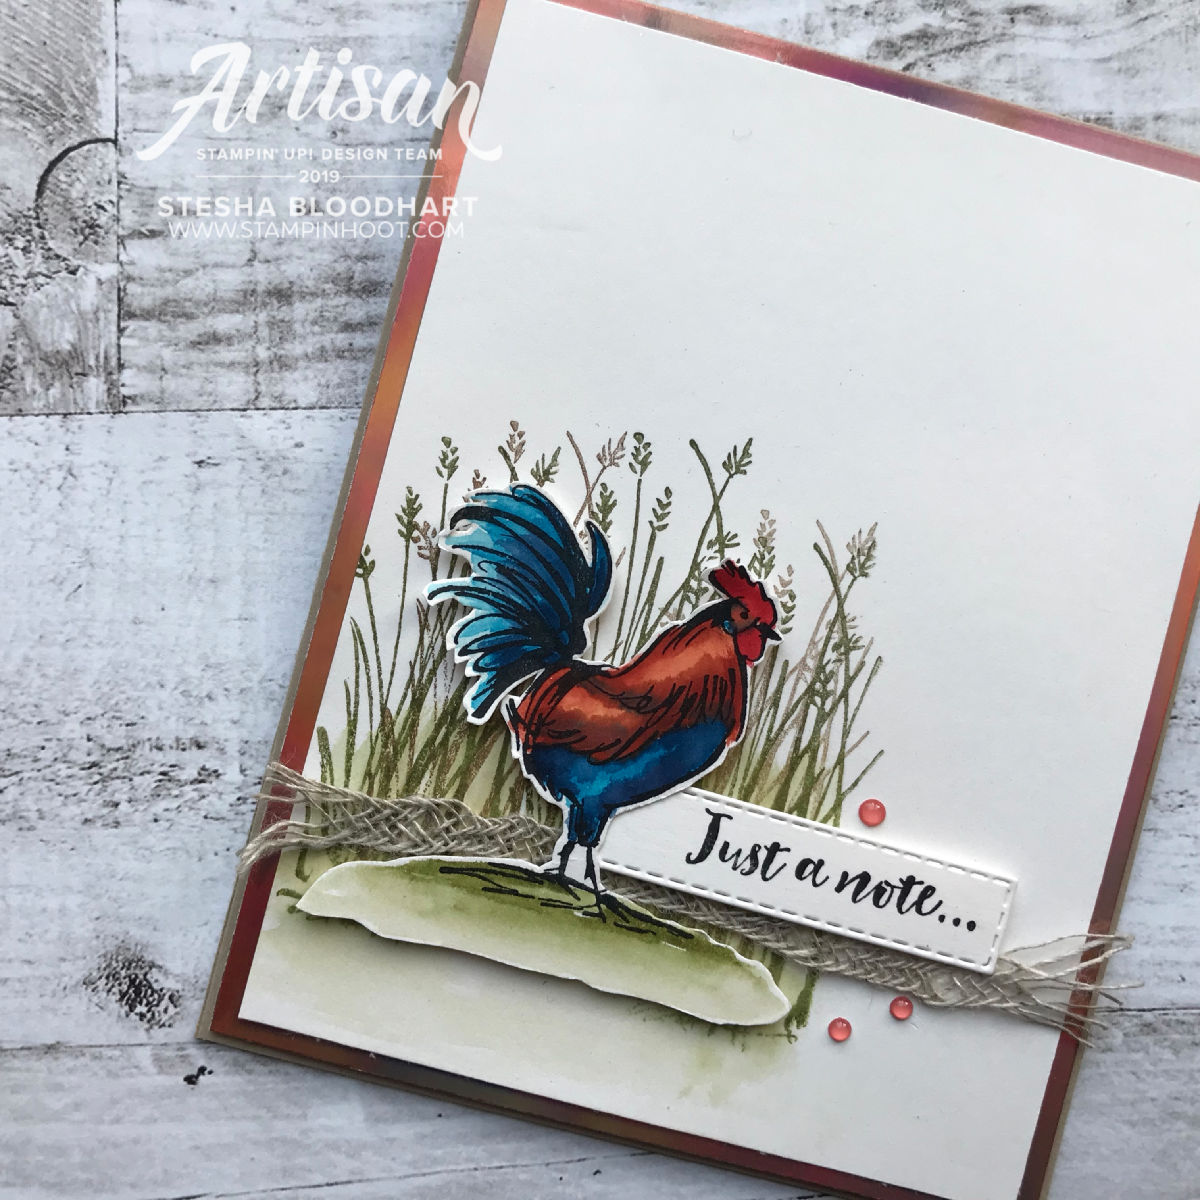 Home to Roost Cling Stamp Set - FREE with $50+ Product Purchase during Sale-A-Bration.  Handmade by Stesha Bloodhart, Stampin' Hoot! 2019 Artisan